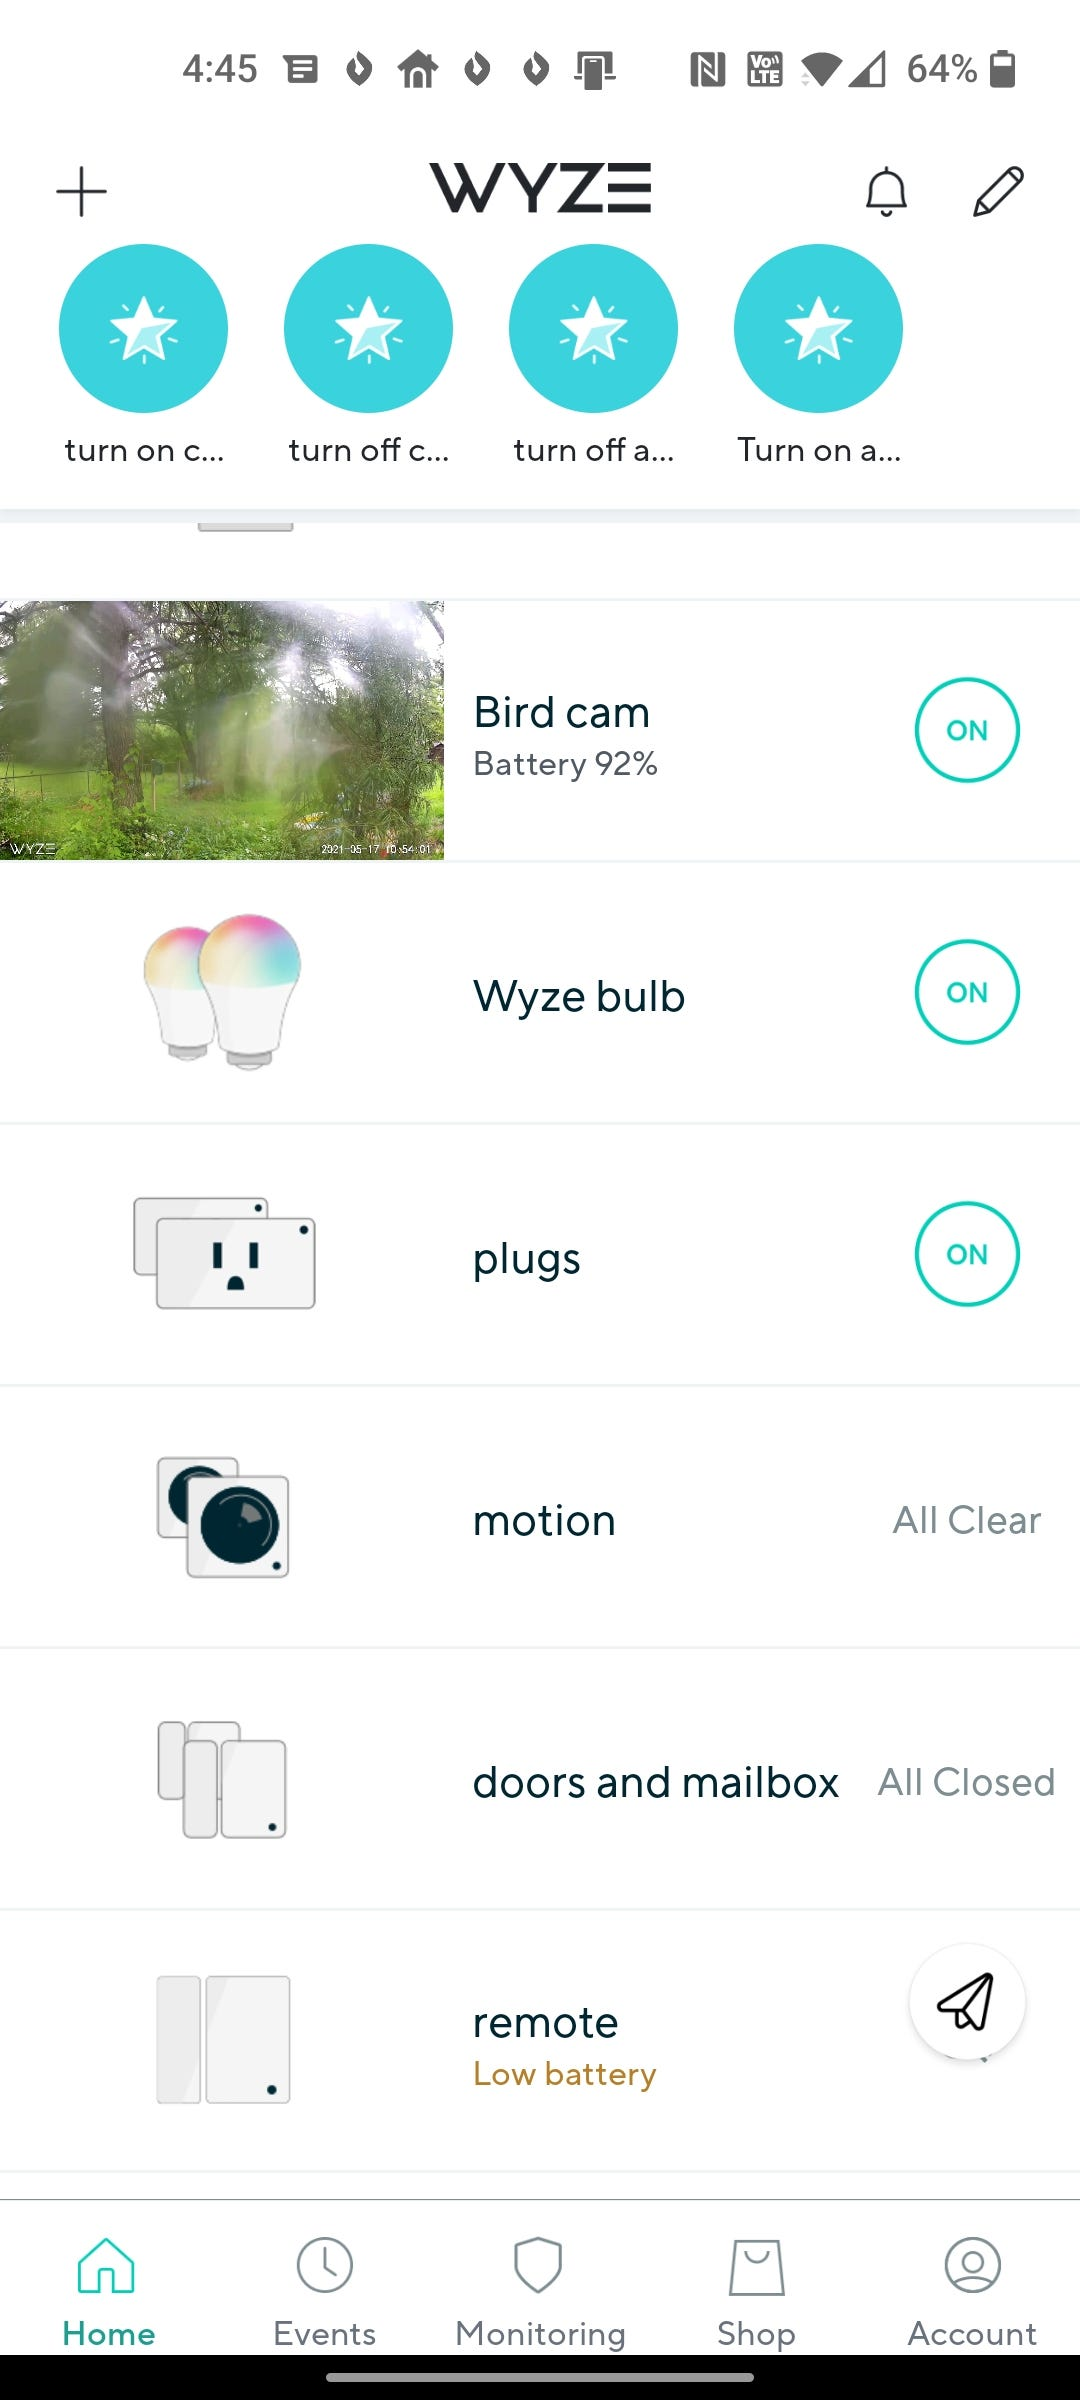 Wyze's Home Monitoring views.